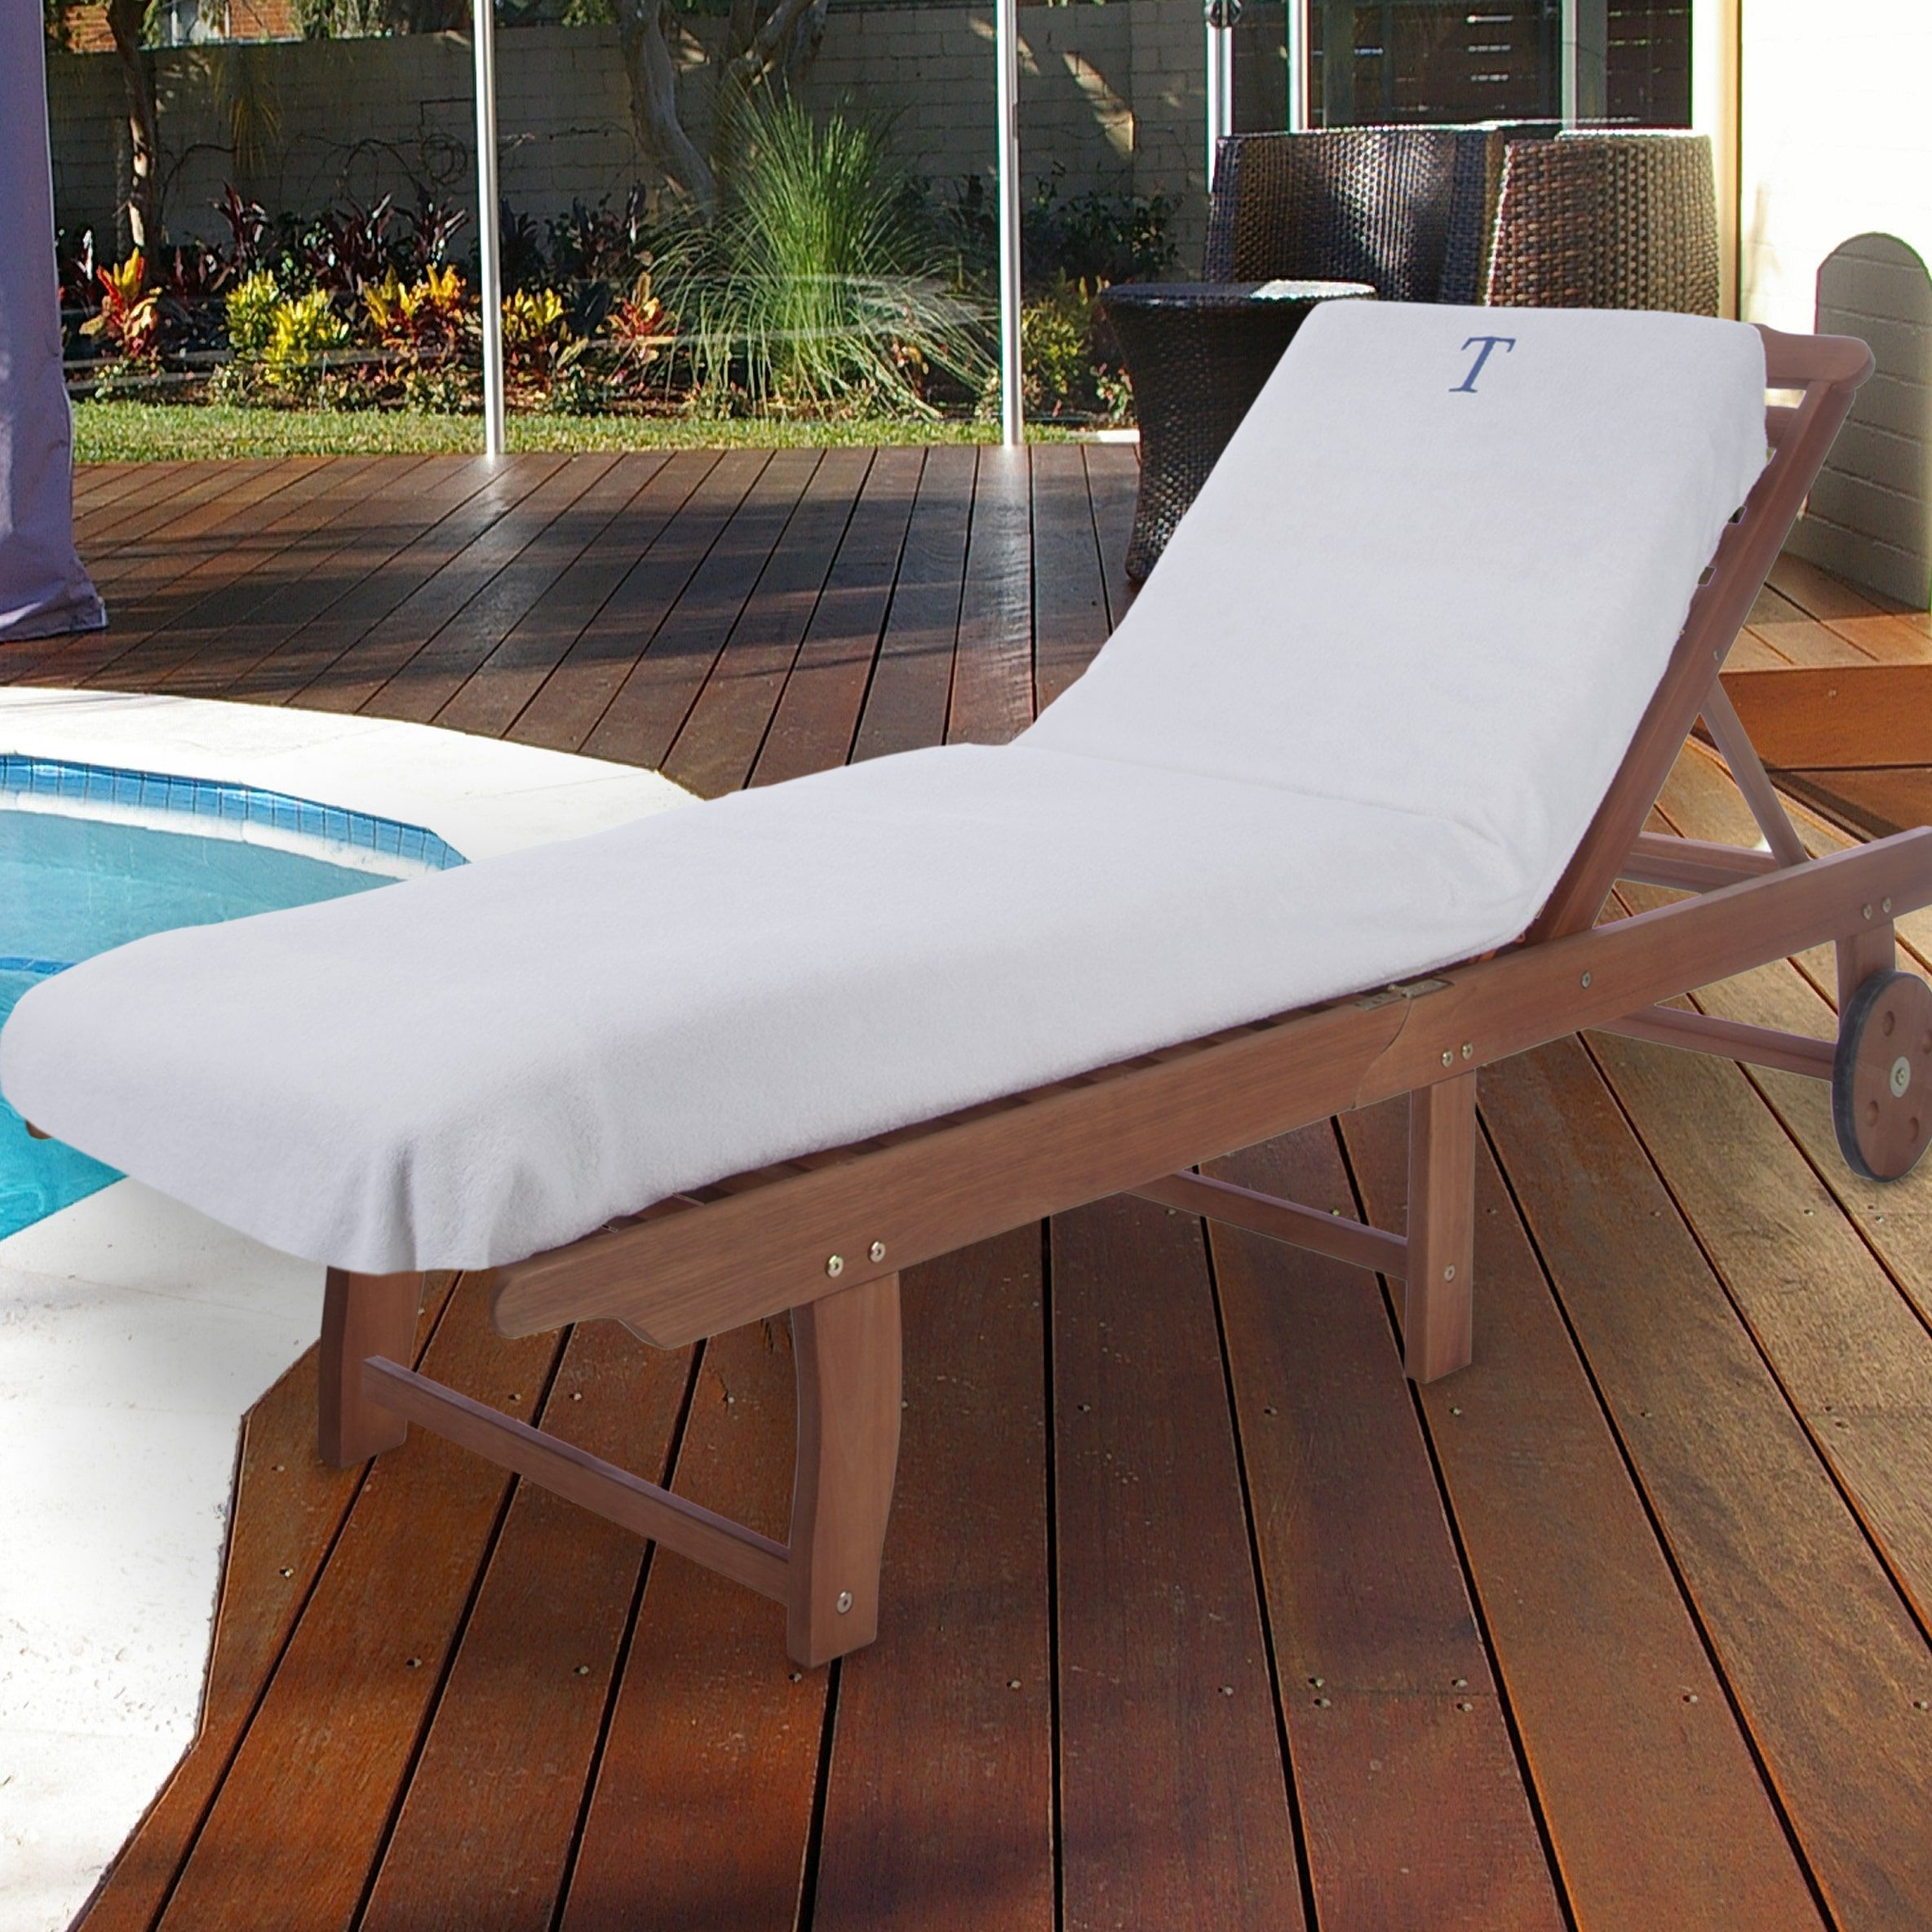 [%Superior 100% Cotton Monogrammed Super Absorbent Chaise With Regard To 2020 Wood Blue And White Cushion Outdoor Chaise Lounge Chairs|Wood Blue And White Cushion Outdoor Chaise Lounge Chairs Pertaining To Most Current Superior 100% Cotton Monogrammed Super Absorbent Chaise|Well Known Wood Blue And White Cushion Outdoor Chaise Lounge Chairs In Superior 100% Cotton Monogrammed Super Absorbent Chaise|Preferred Superior 100% Cotton Monogrammed Super Absorbent Chaise For Wood Blue And White Cushion Outdoor Chaise Lounge Chairs%] (View 1 of 25)